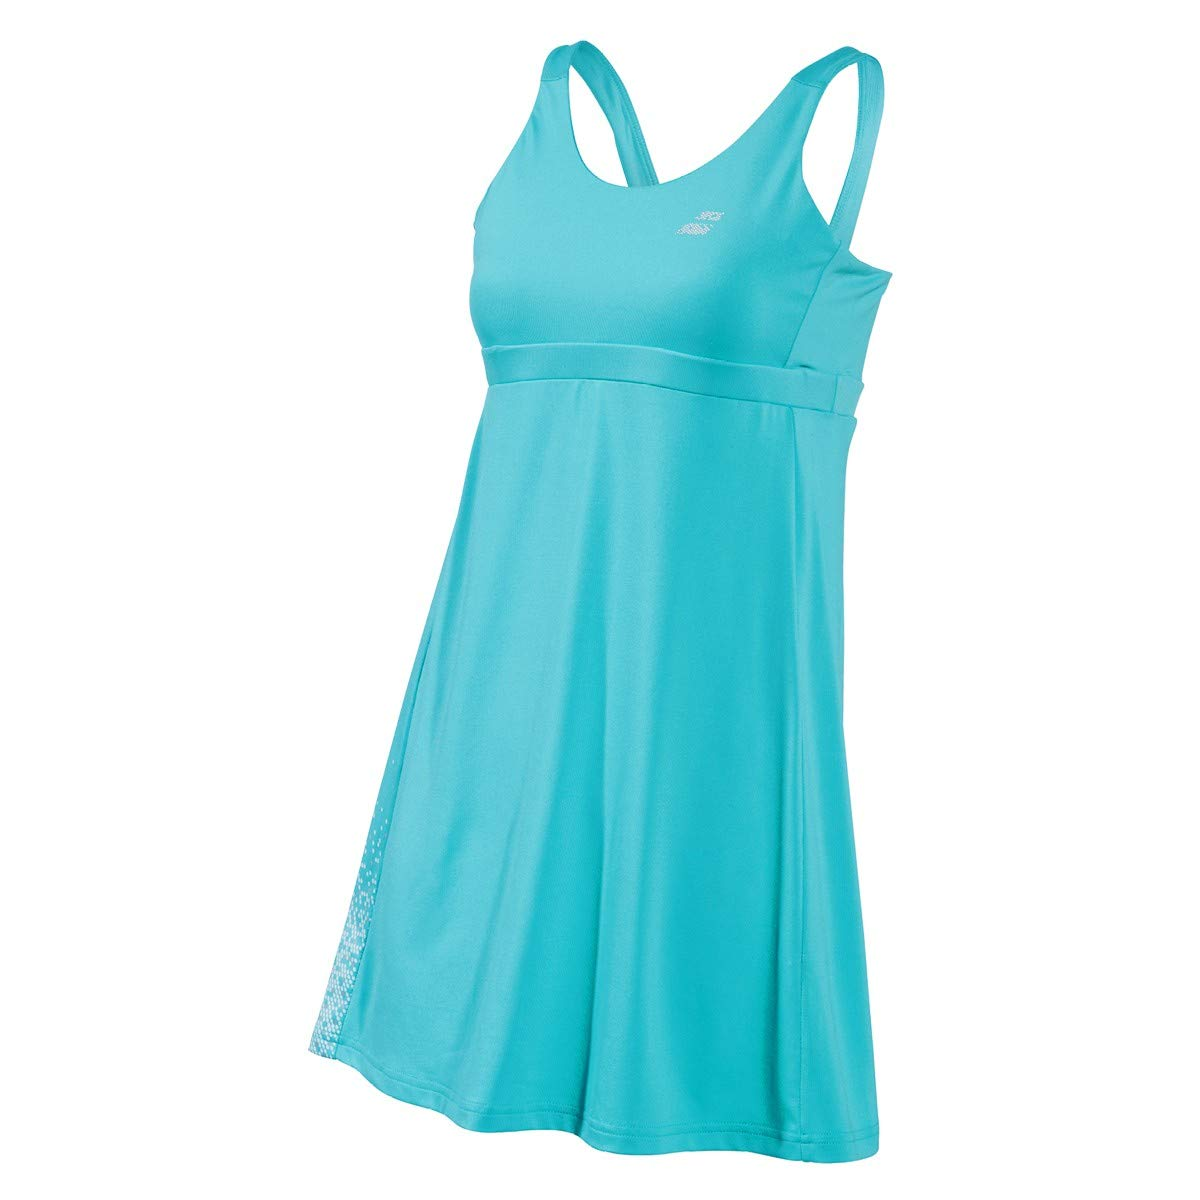 Babolat Girls Performance Lightweight Breathable Tennis Dress with Shorties, Horizon Blue (Youth Size 12-14)